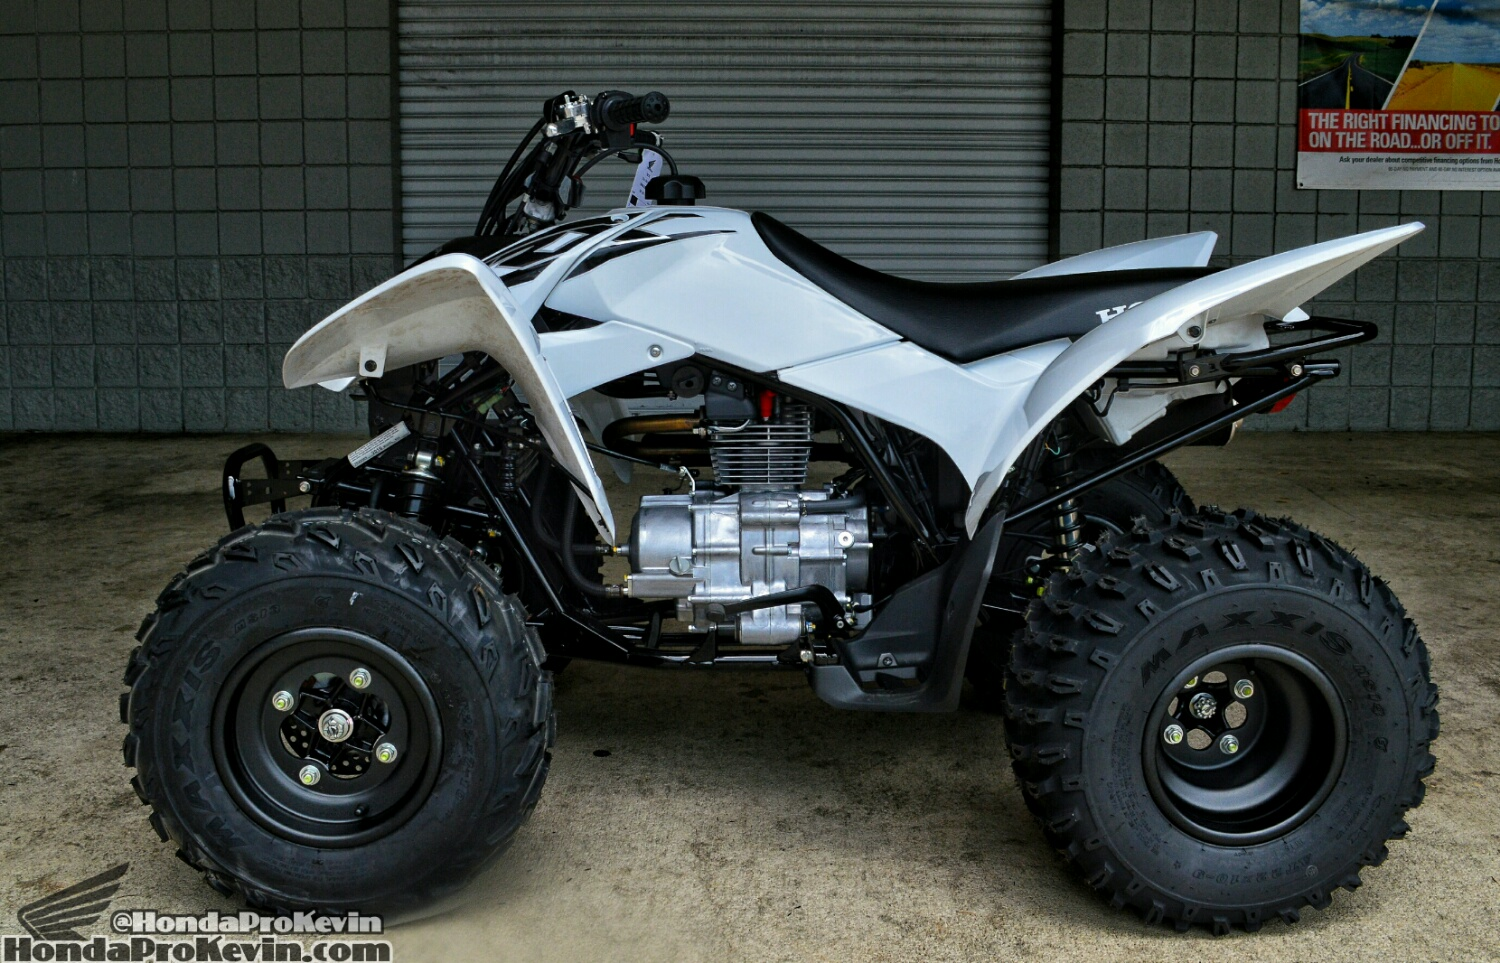 2016 Honda TRX250X Sport ATV / Quad - White - TRX250EX - 250 cc Race Four Wheeler